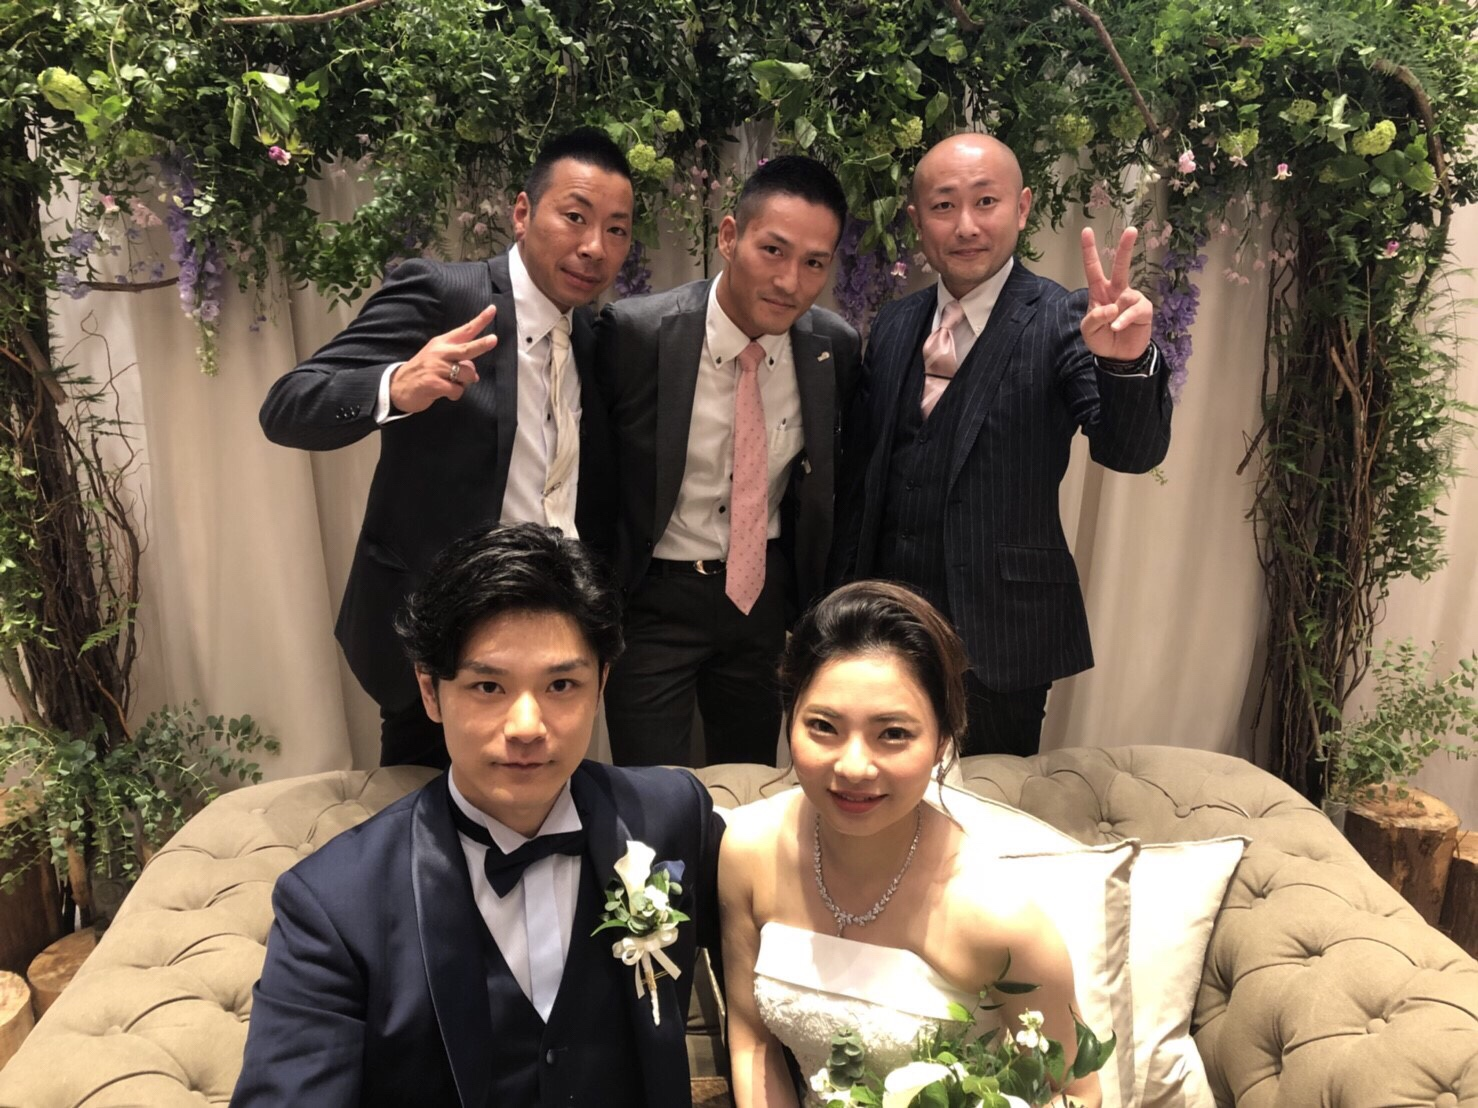 img 6114 九州遠征!最高の結婚式✨✨